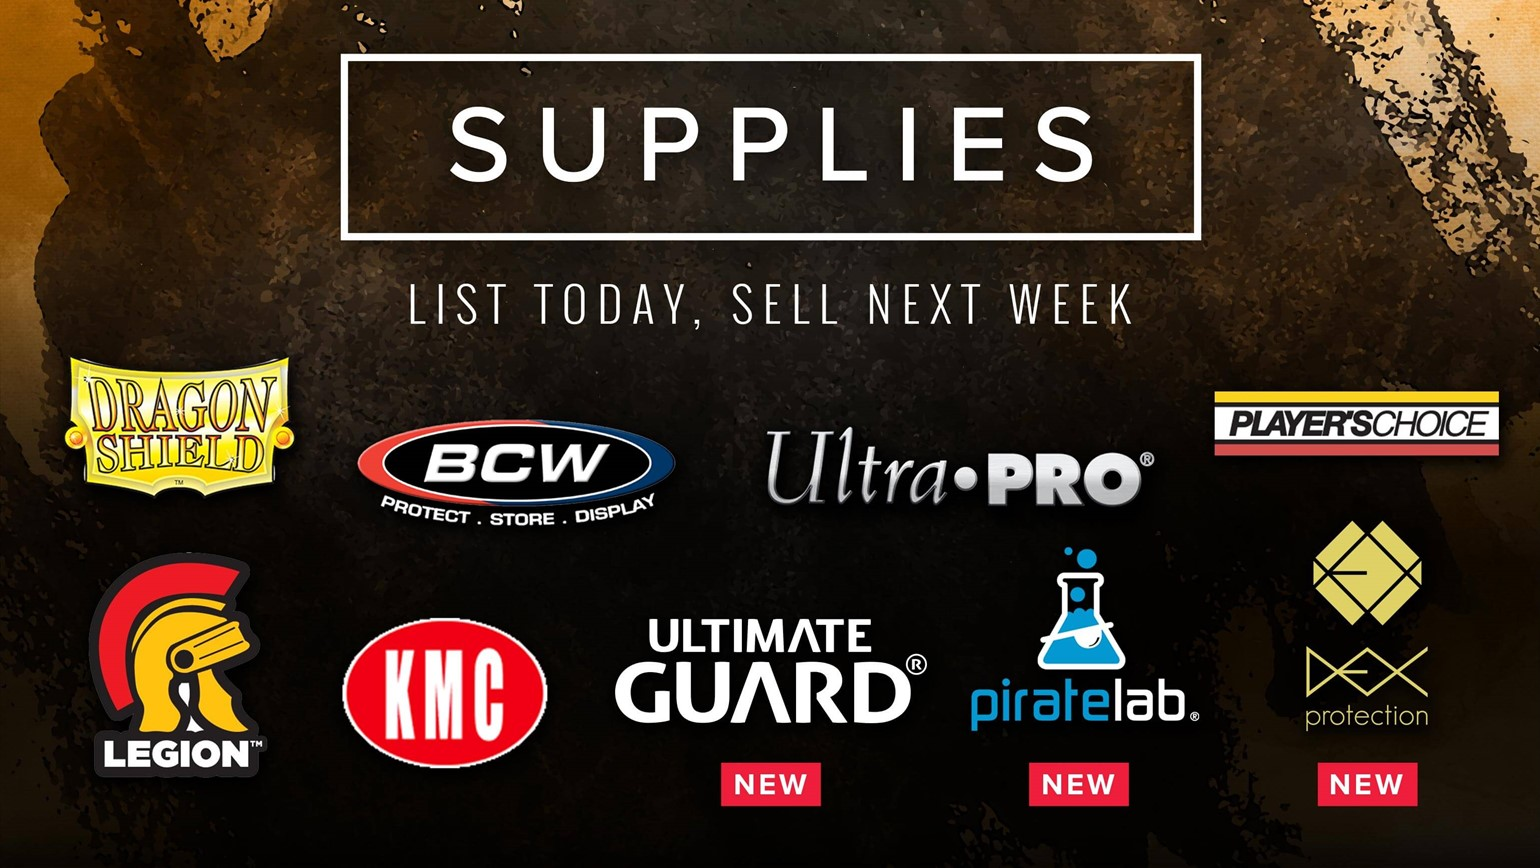 Thousands of Supplies Now Available to List